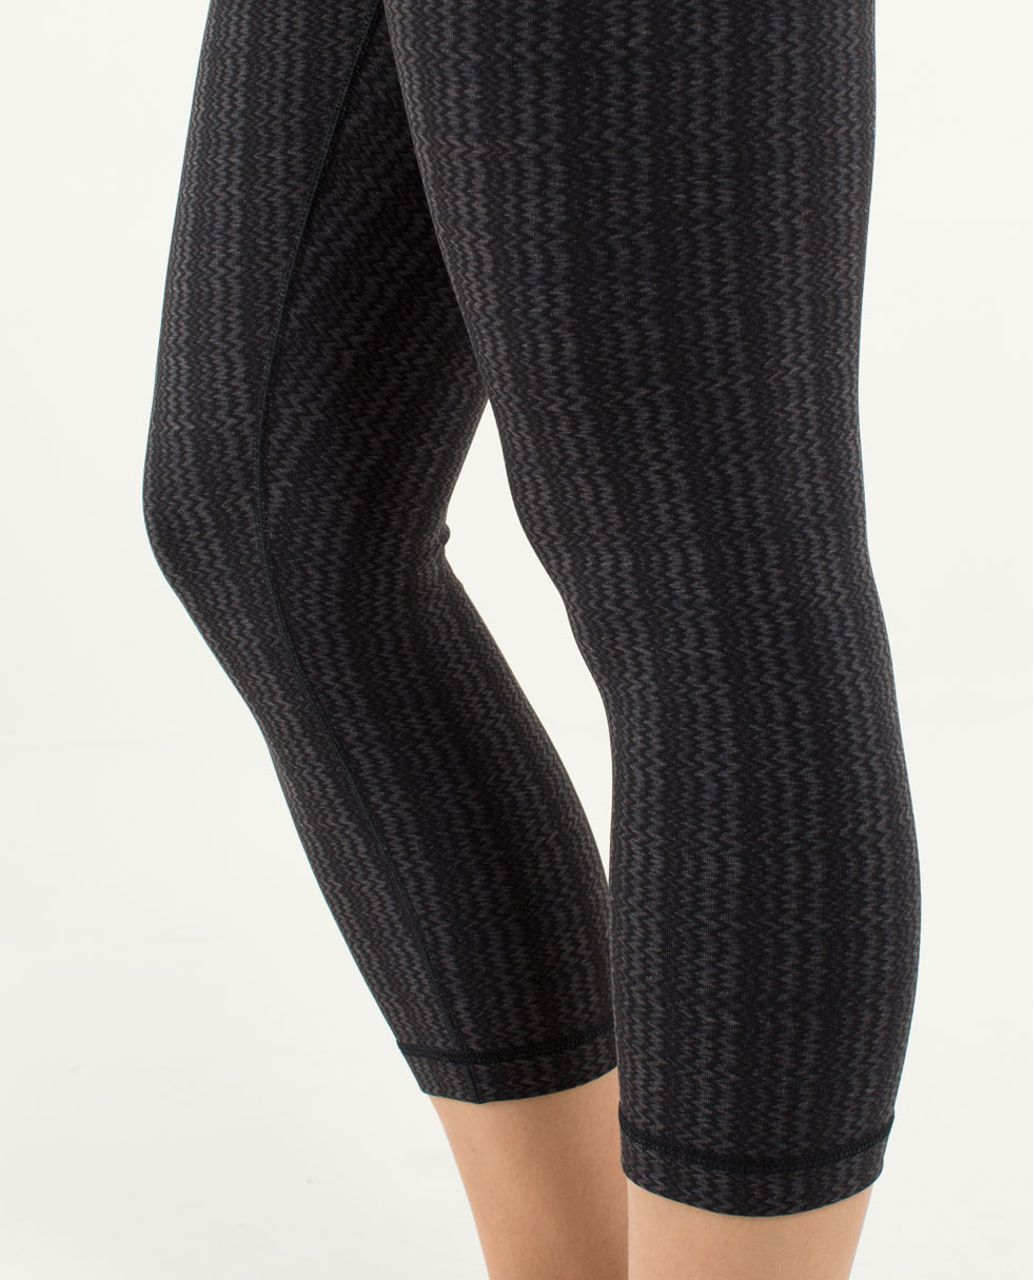 Lululemon Wunder Under Crop - Ziggy Wee September Black / Black